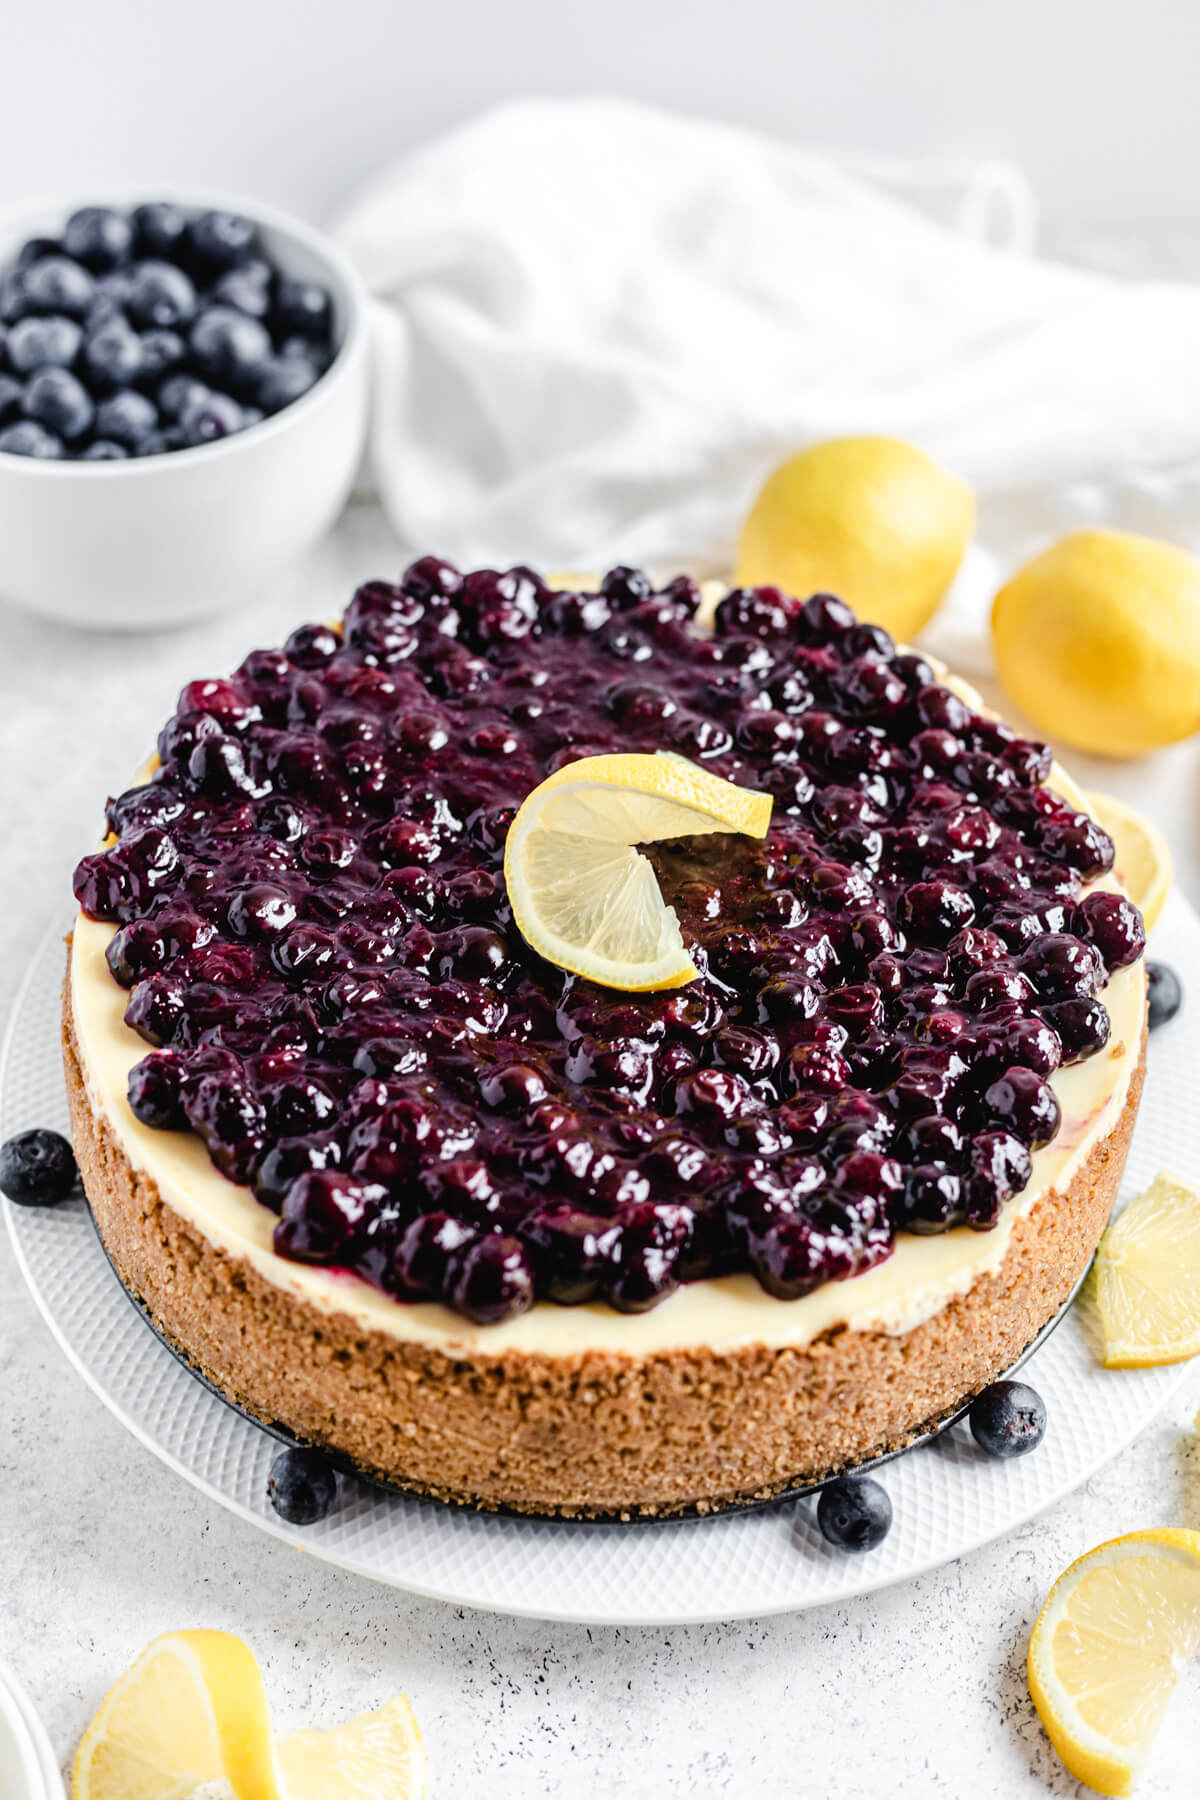 cheesecake on a large white plate with lemons and blueberries around and on top of it